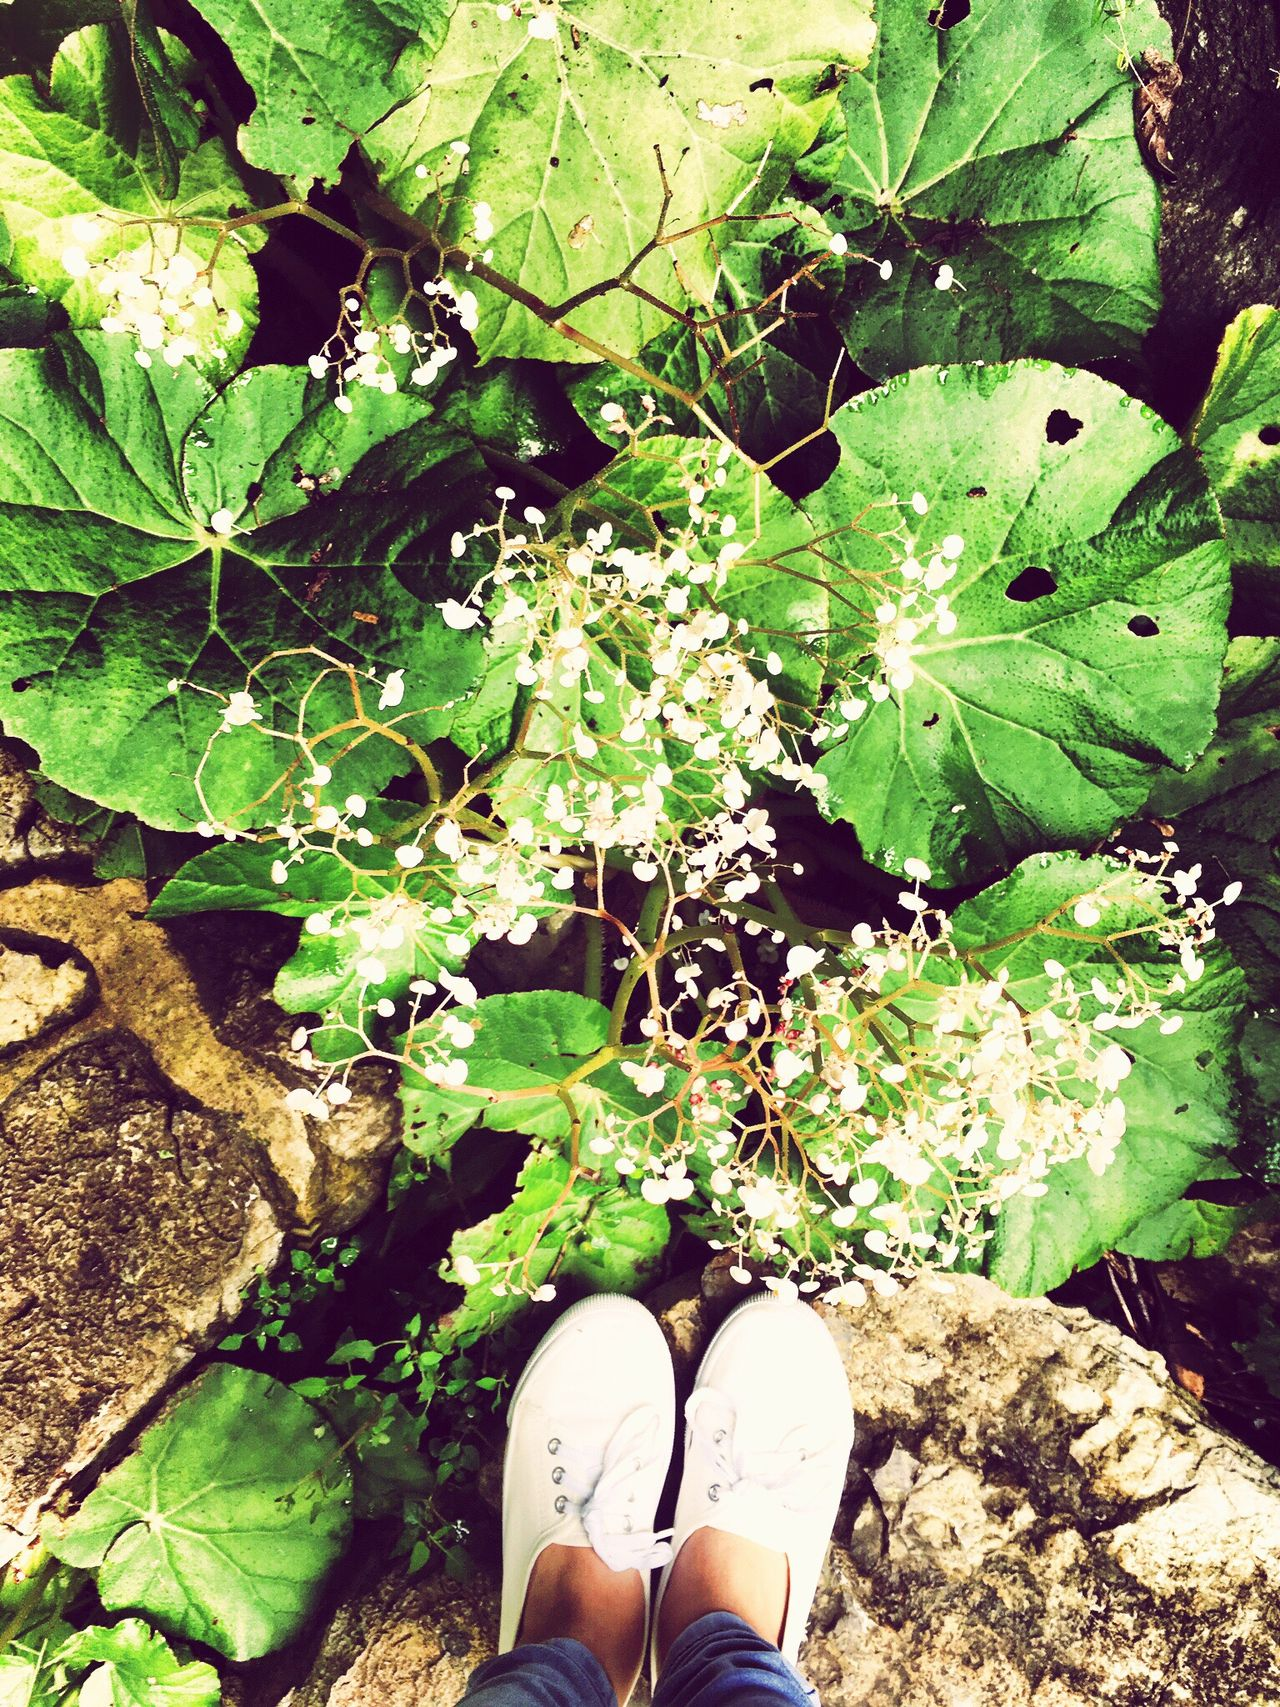 Keep your feet on the ground. The Traveler Girl Wander Nature Feetselfie Feet On The Ground Out Of City Chill Somewhere Lost Discover The Philippines EyeEm Nature Lover Eyeemphotography Eyeem Philippines